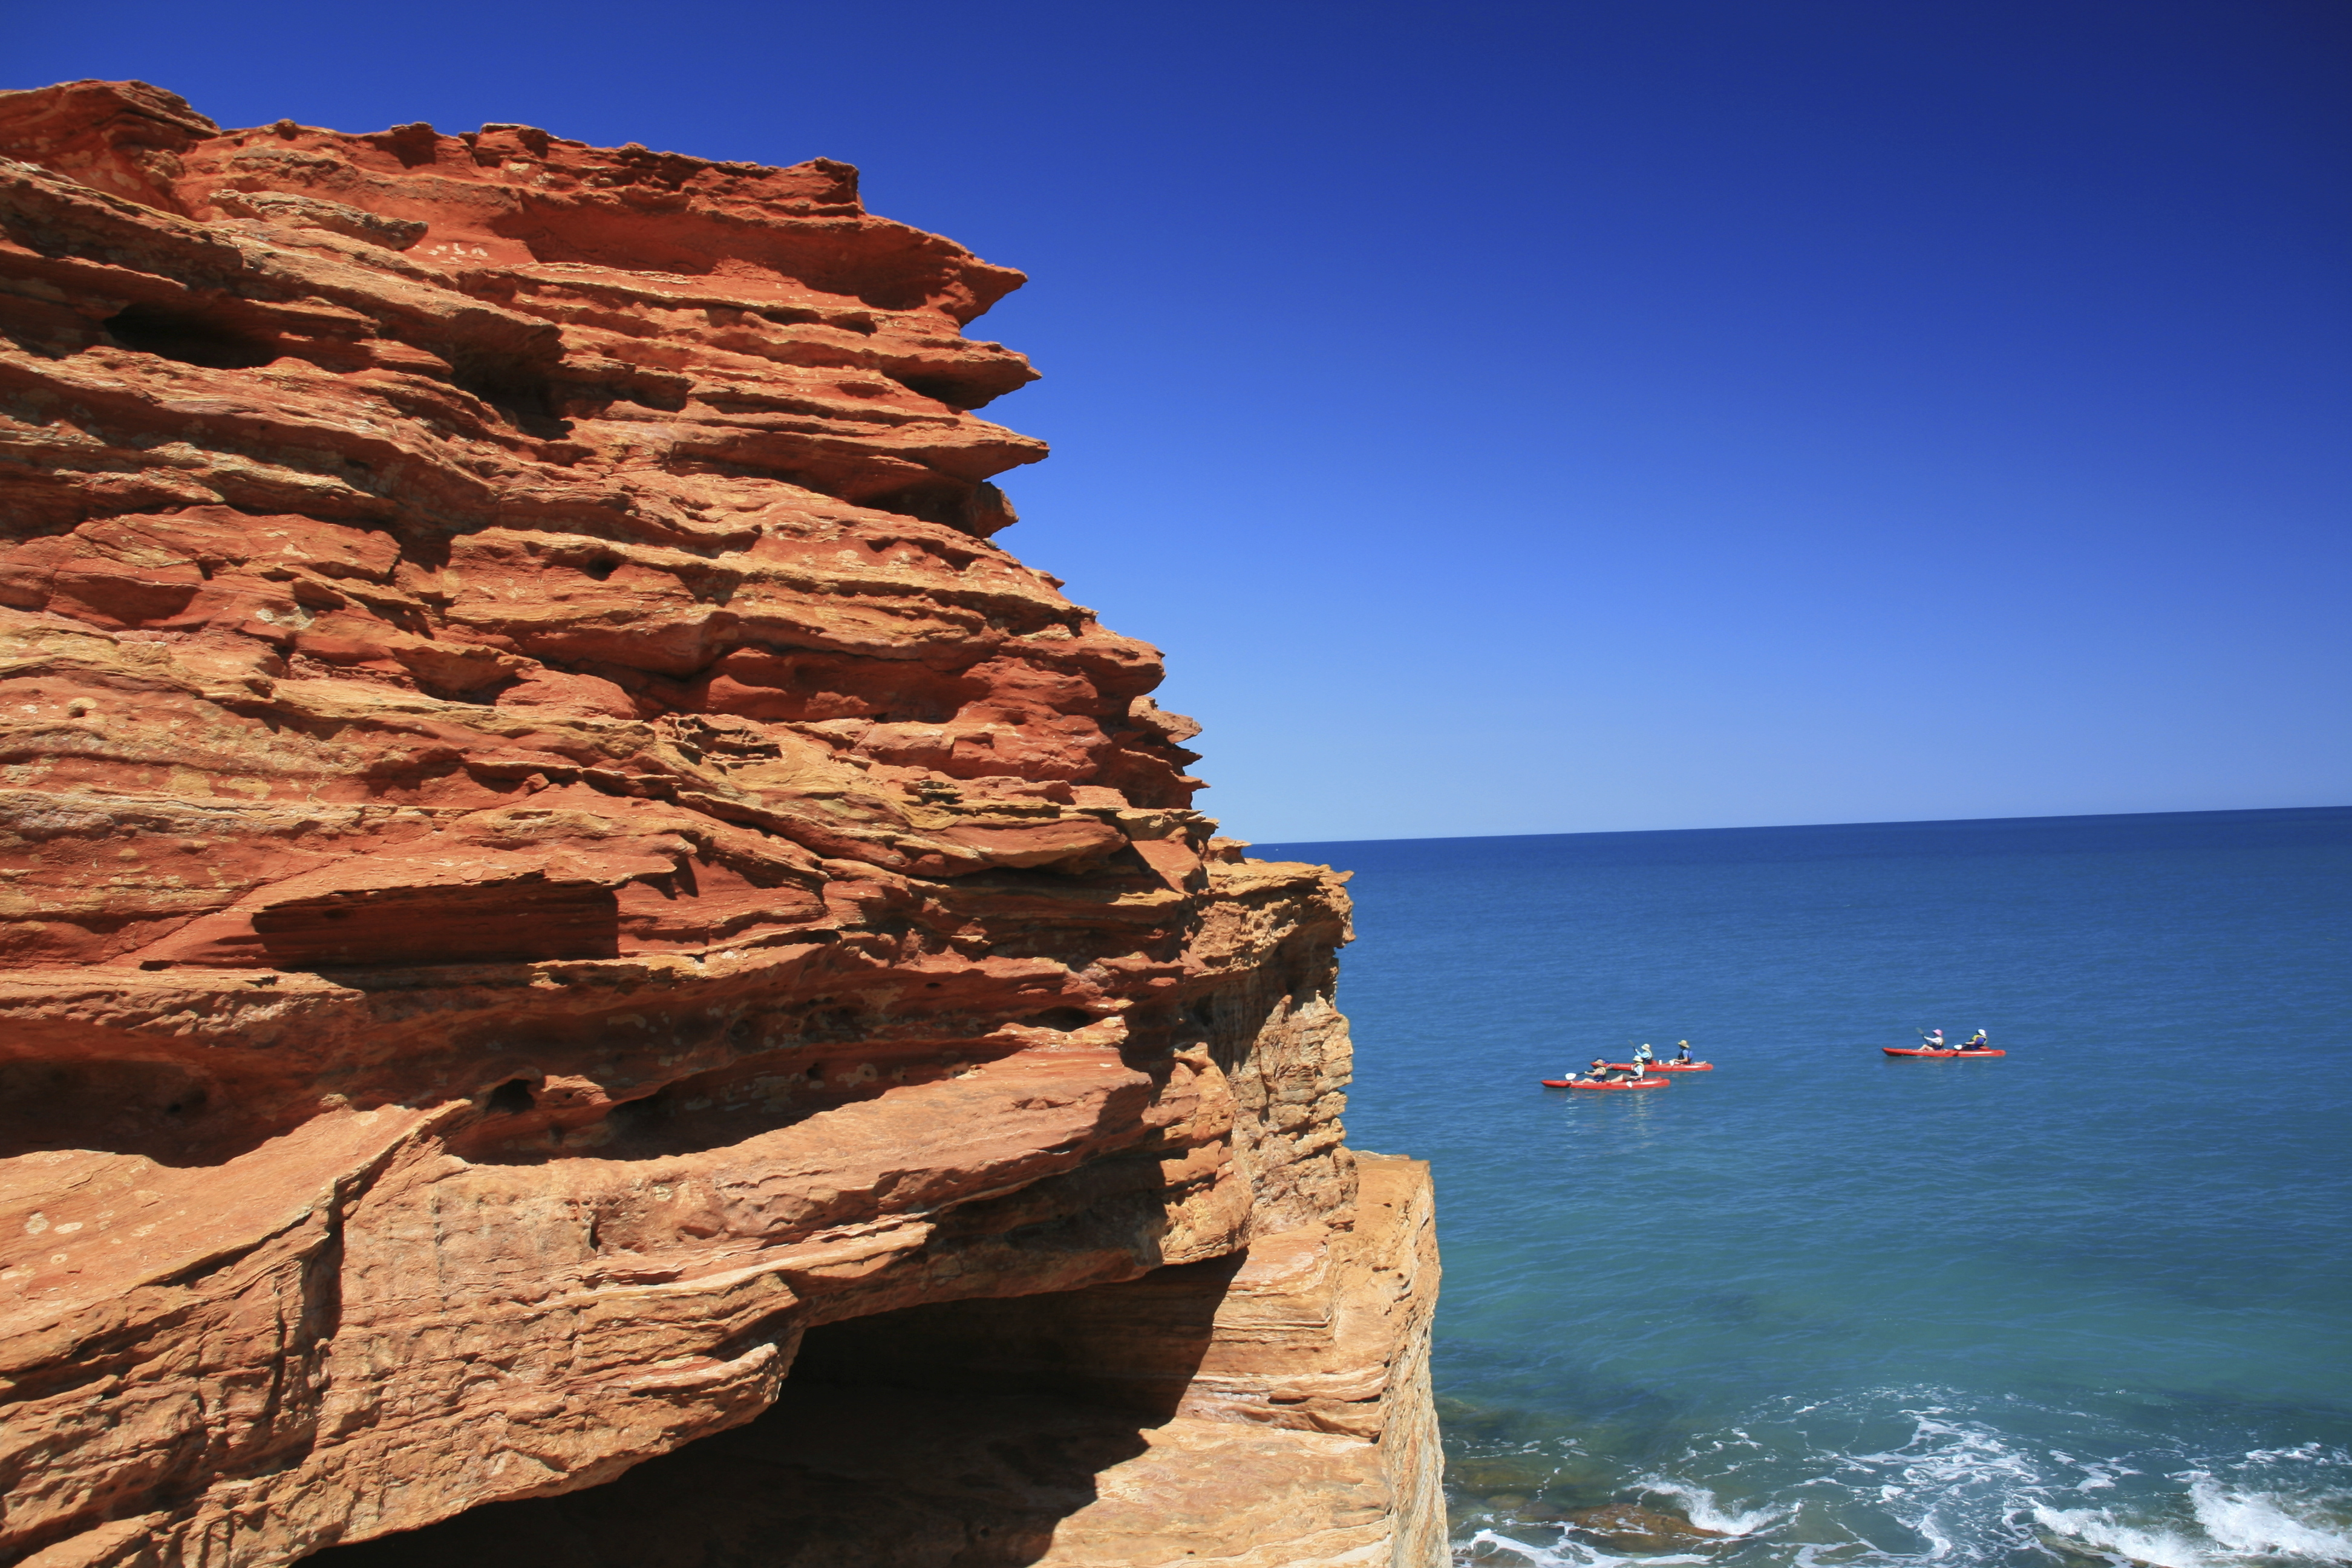 Coanoeing off the red cliffs of West Australia